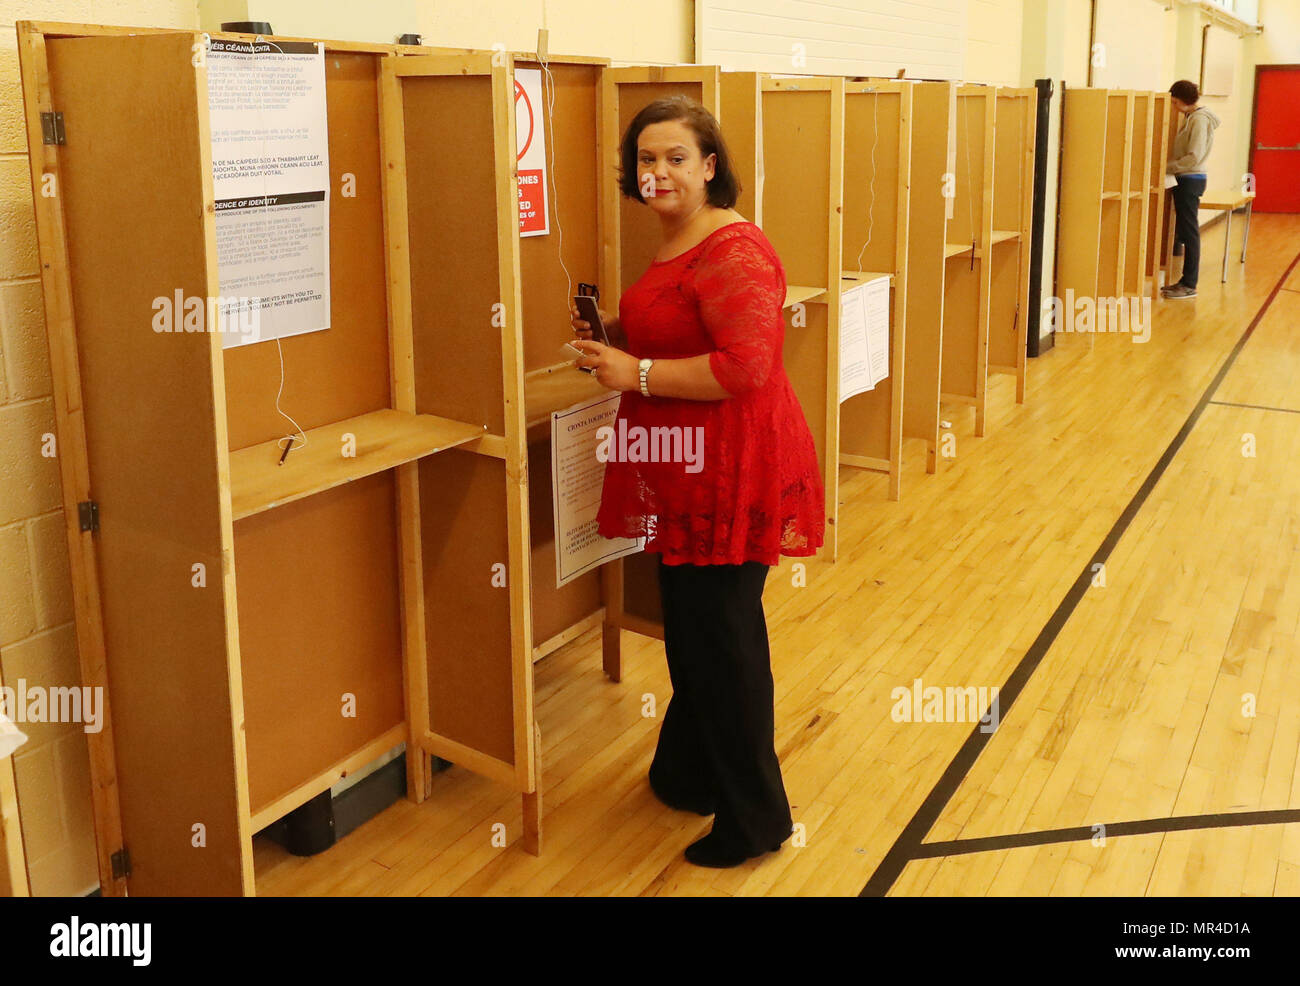 Sinn Fein Leader Mary Lou McDonald casts her vote at St Joseph's School, Dublin, as the country goes to the polls to vote in the referendum on the 8th Amendment of the Irish Constitution. - Stock Image